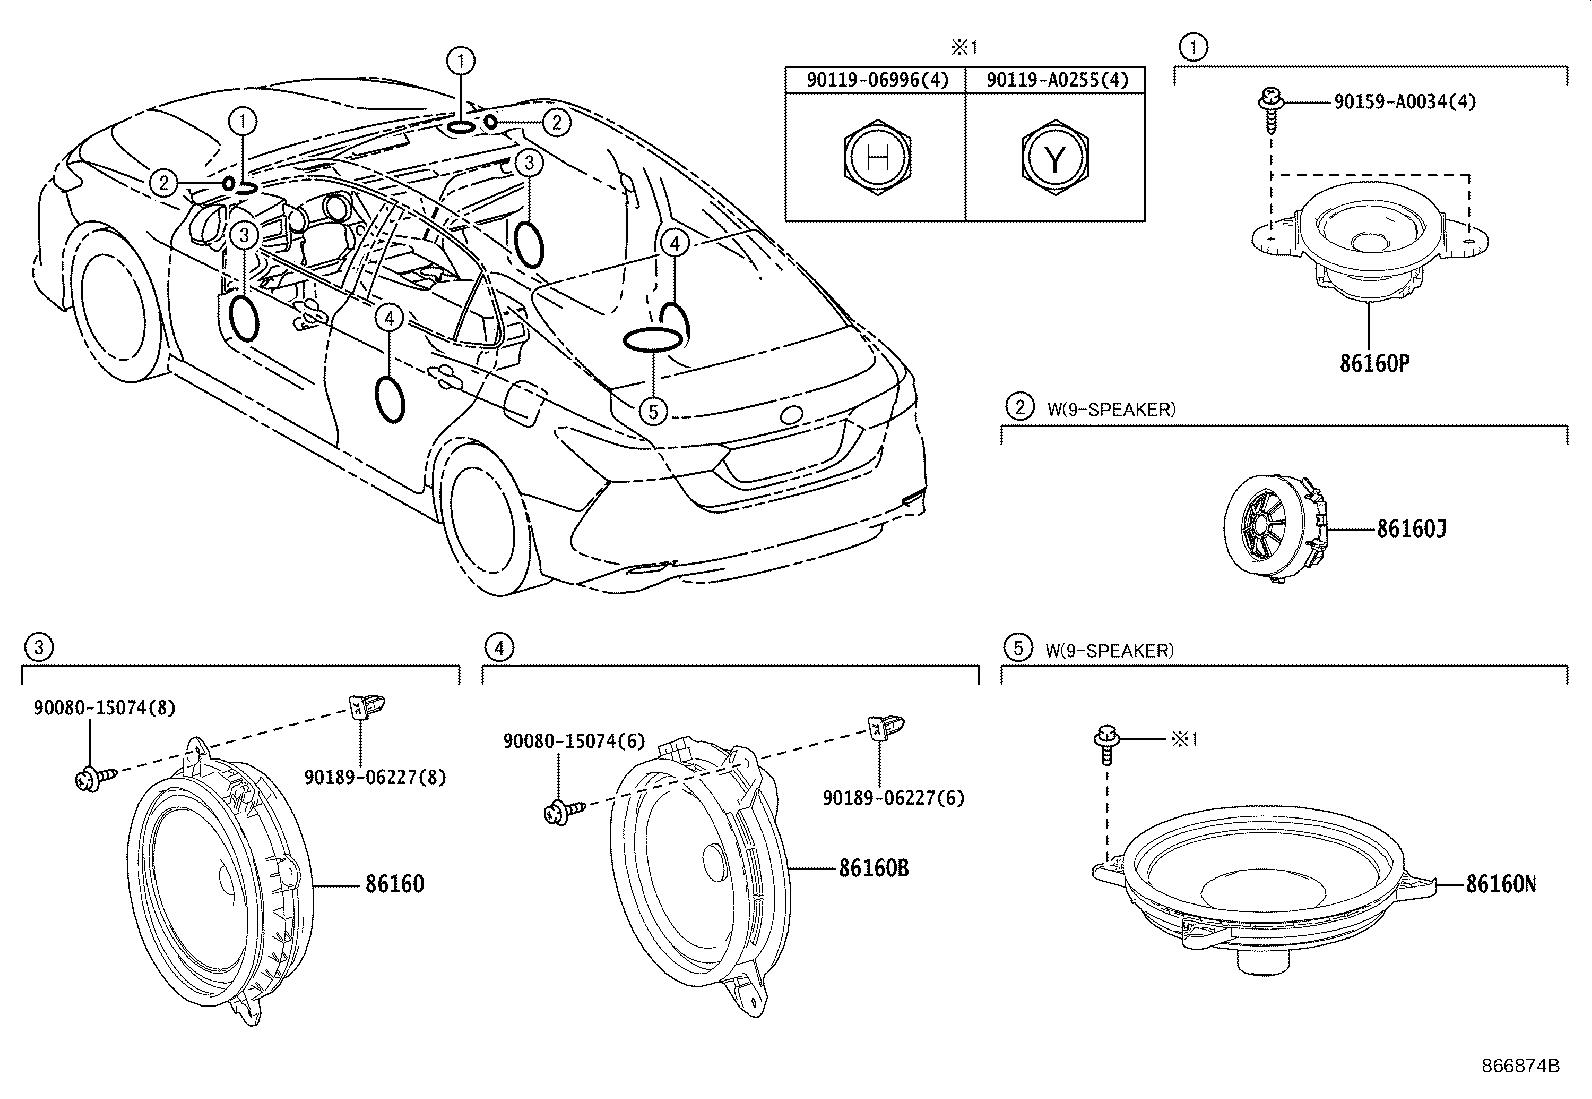 Toyota Camry Speaker (Rear). REAR NO. 3; STEREO COMPONENT